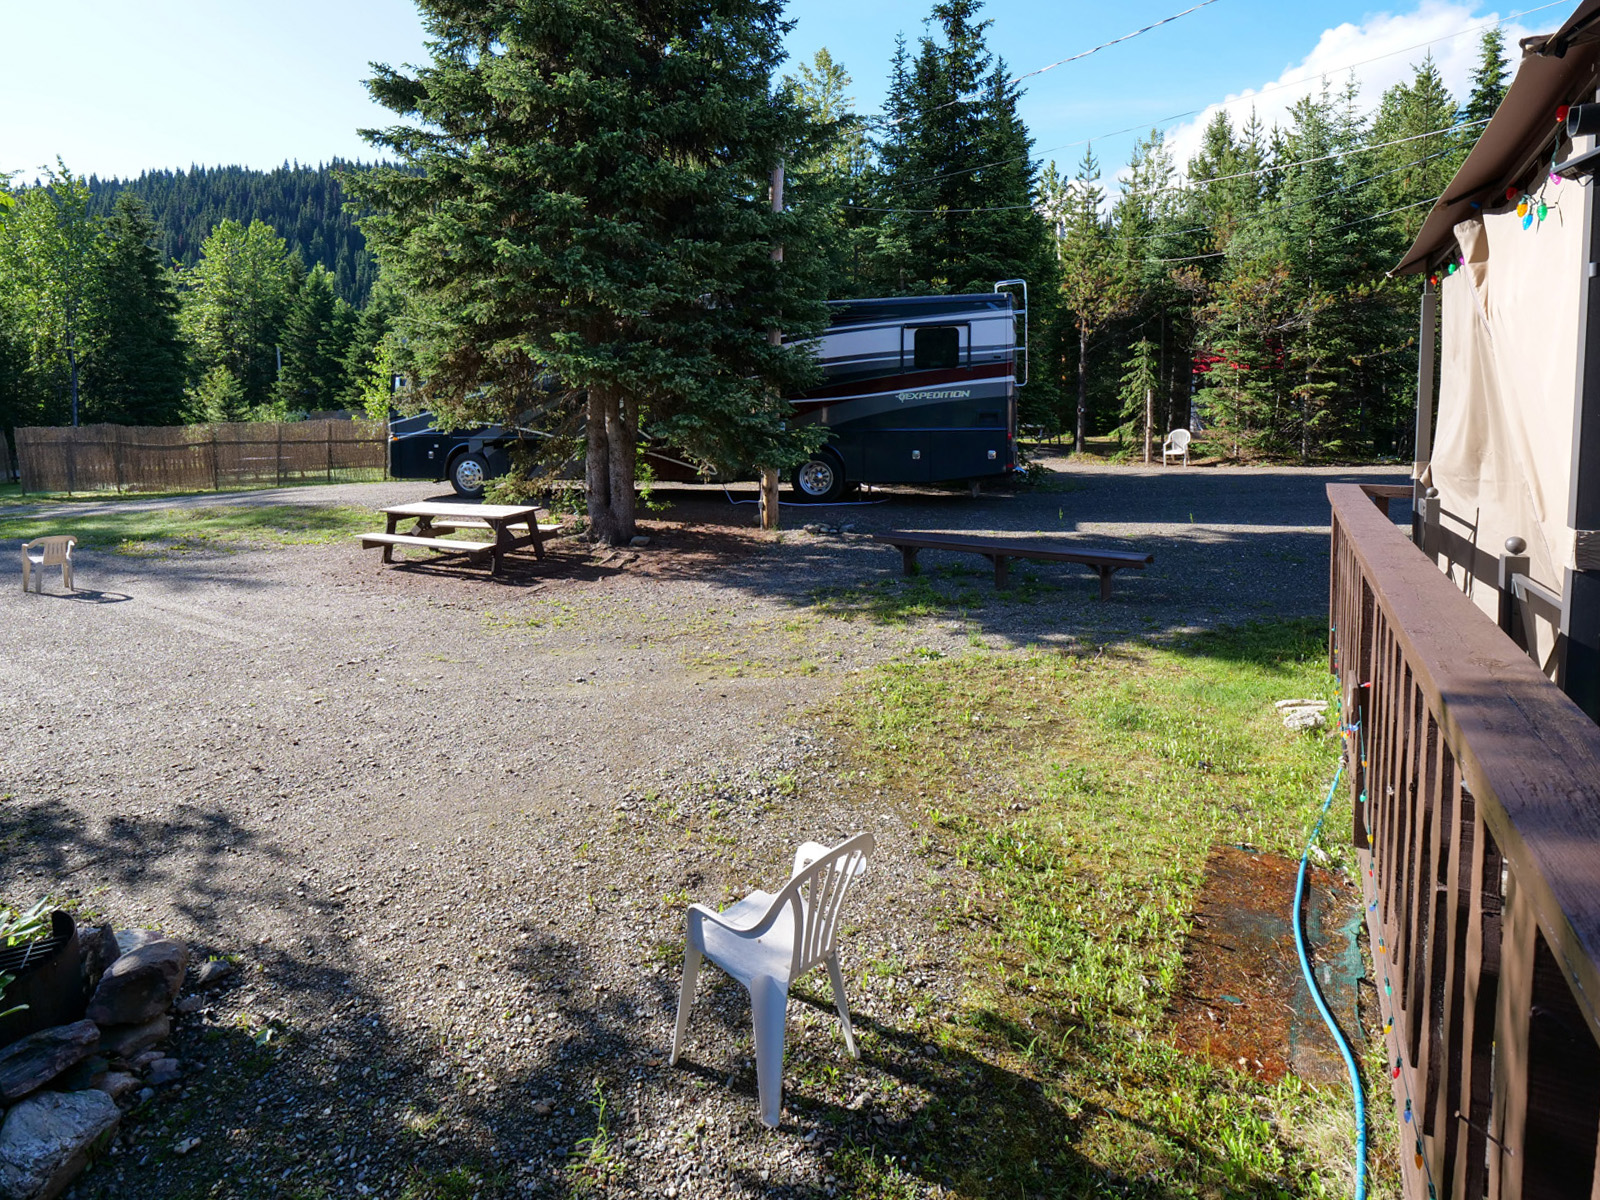 Cariboo joy rv park 22